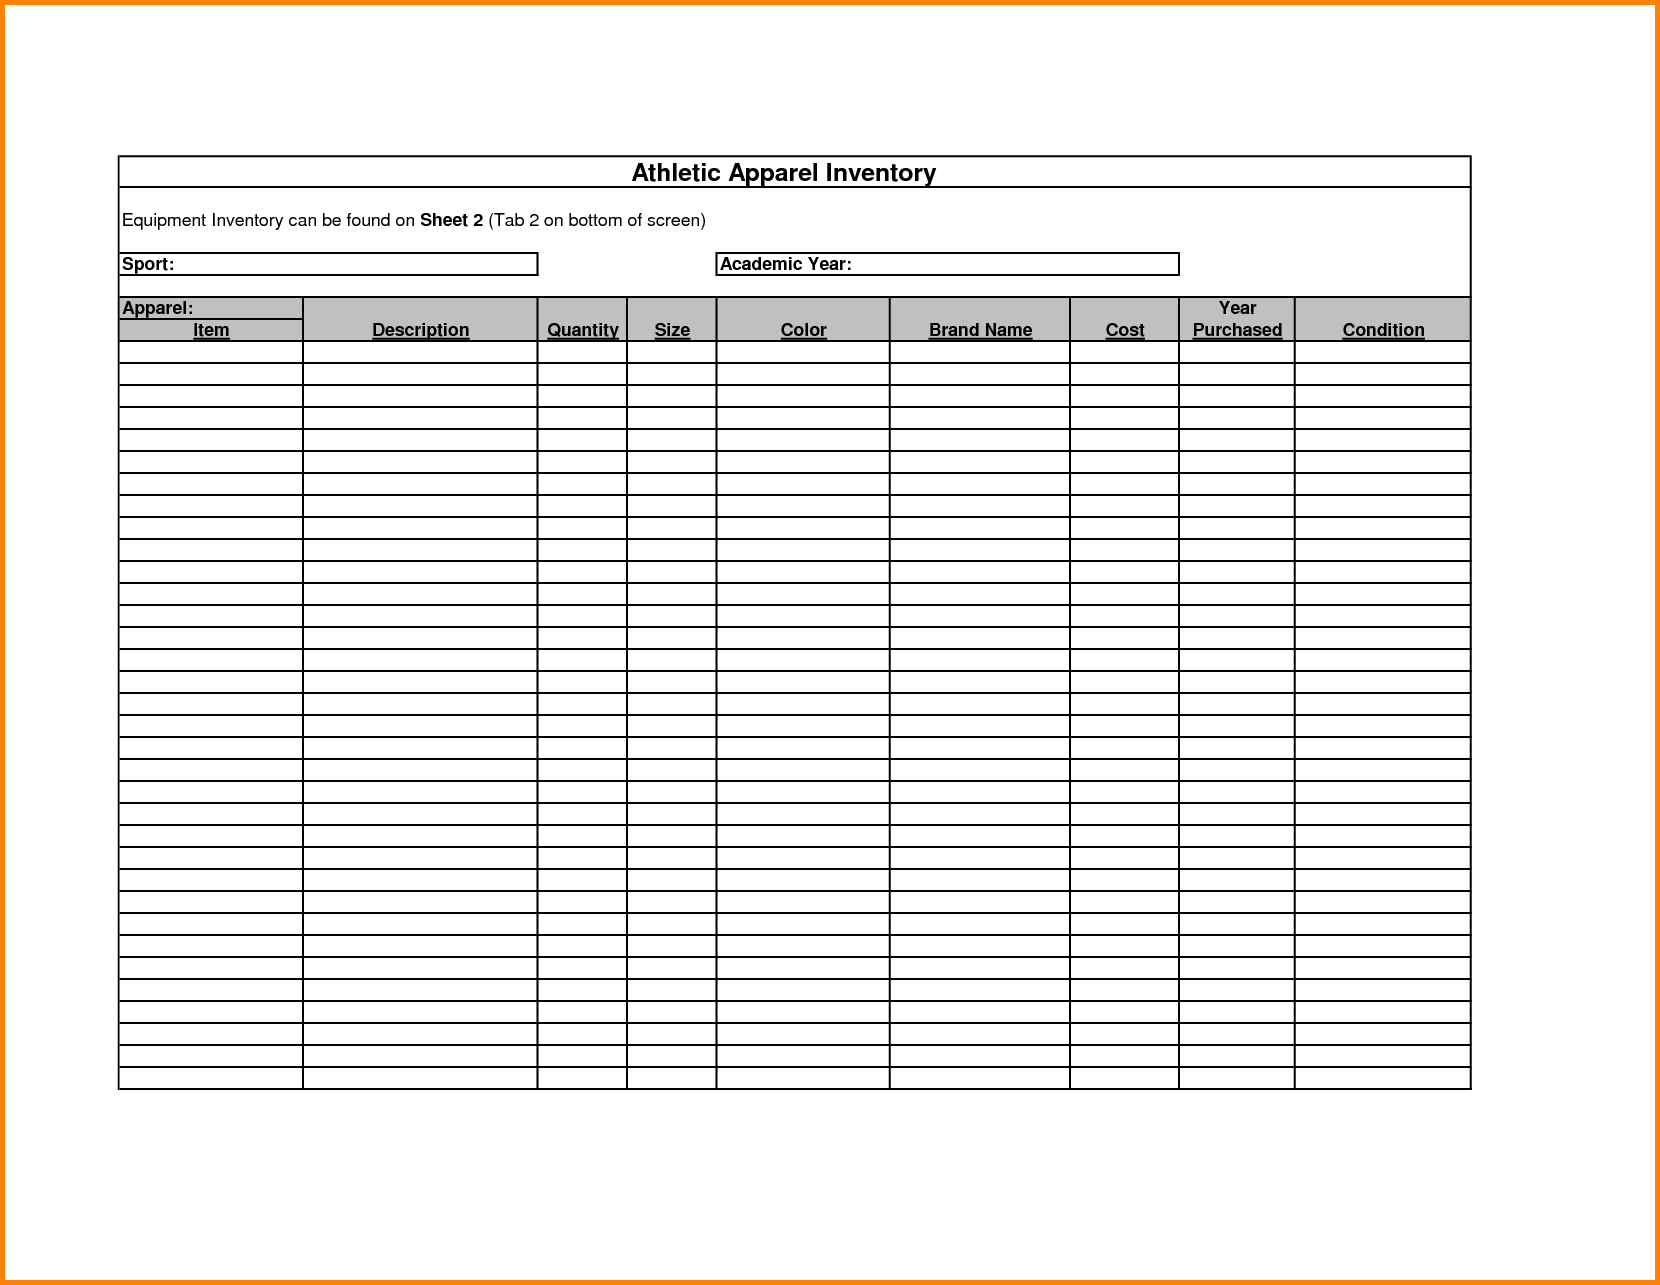 Excel Spreadsheet Inventory Management and Retail Inventory Spreadsheet Template and Free Printable Inventory